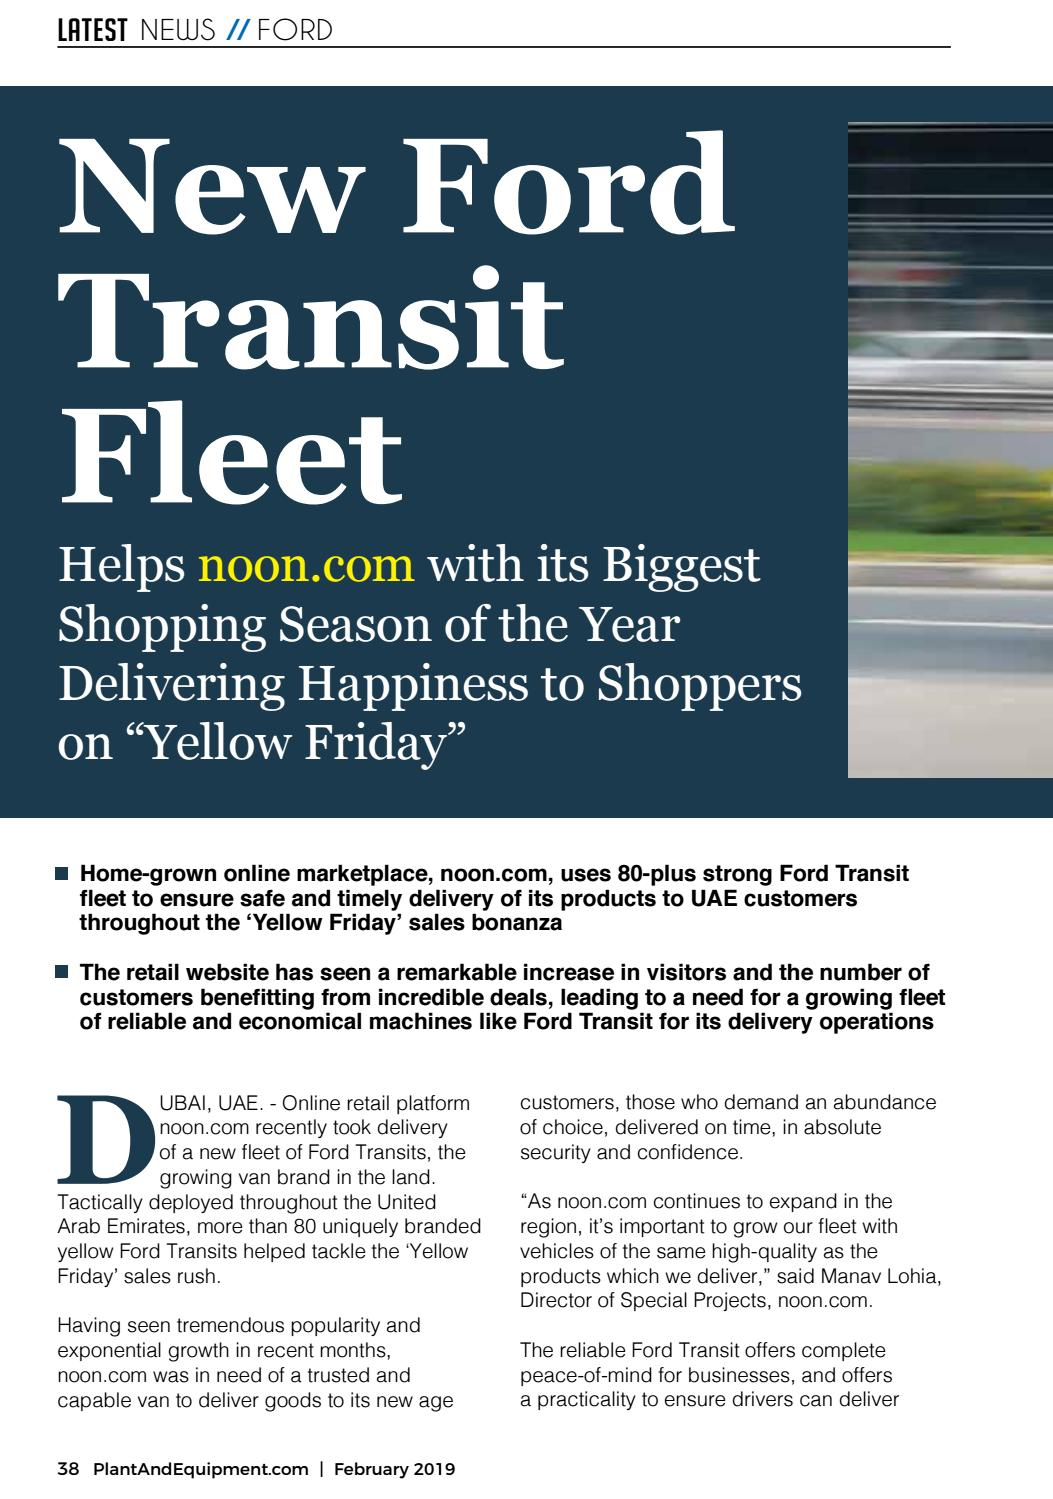 Trucks & Transport | Middle East | February 2019 Edition by